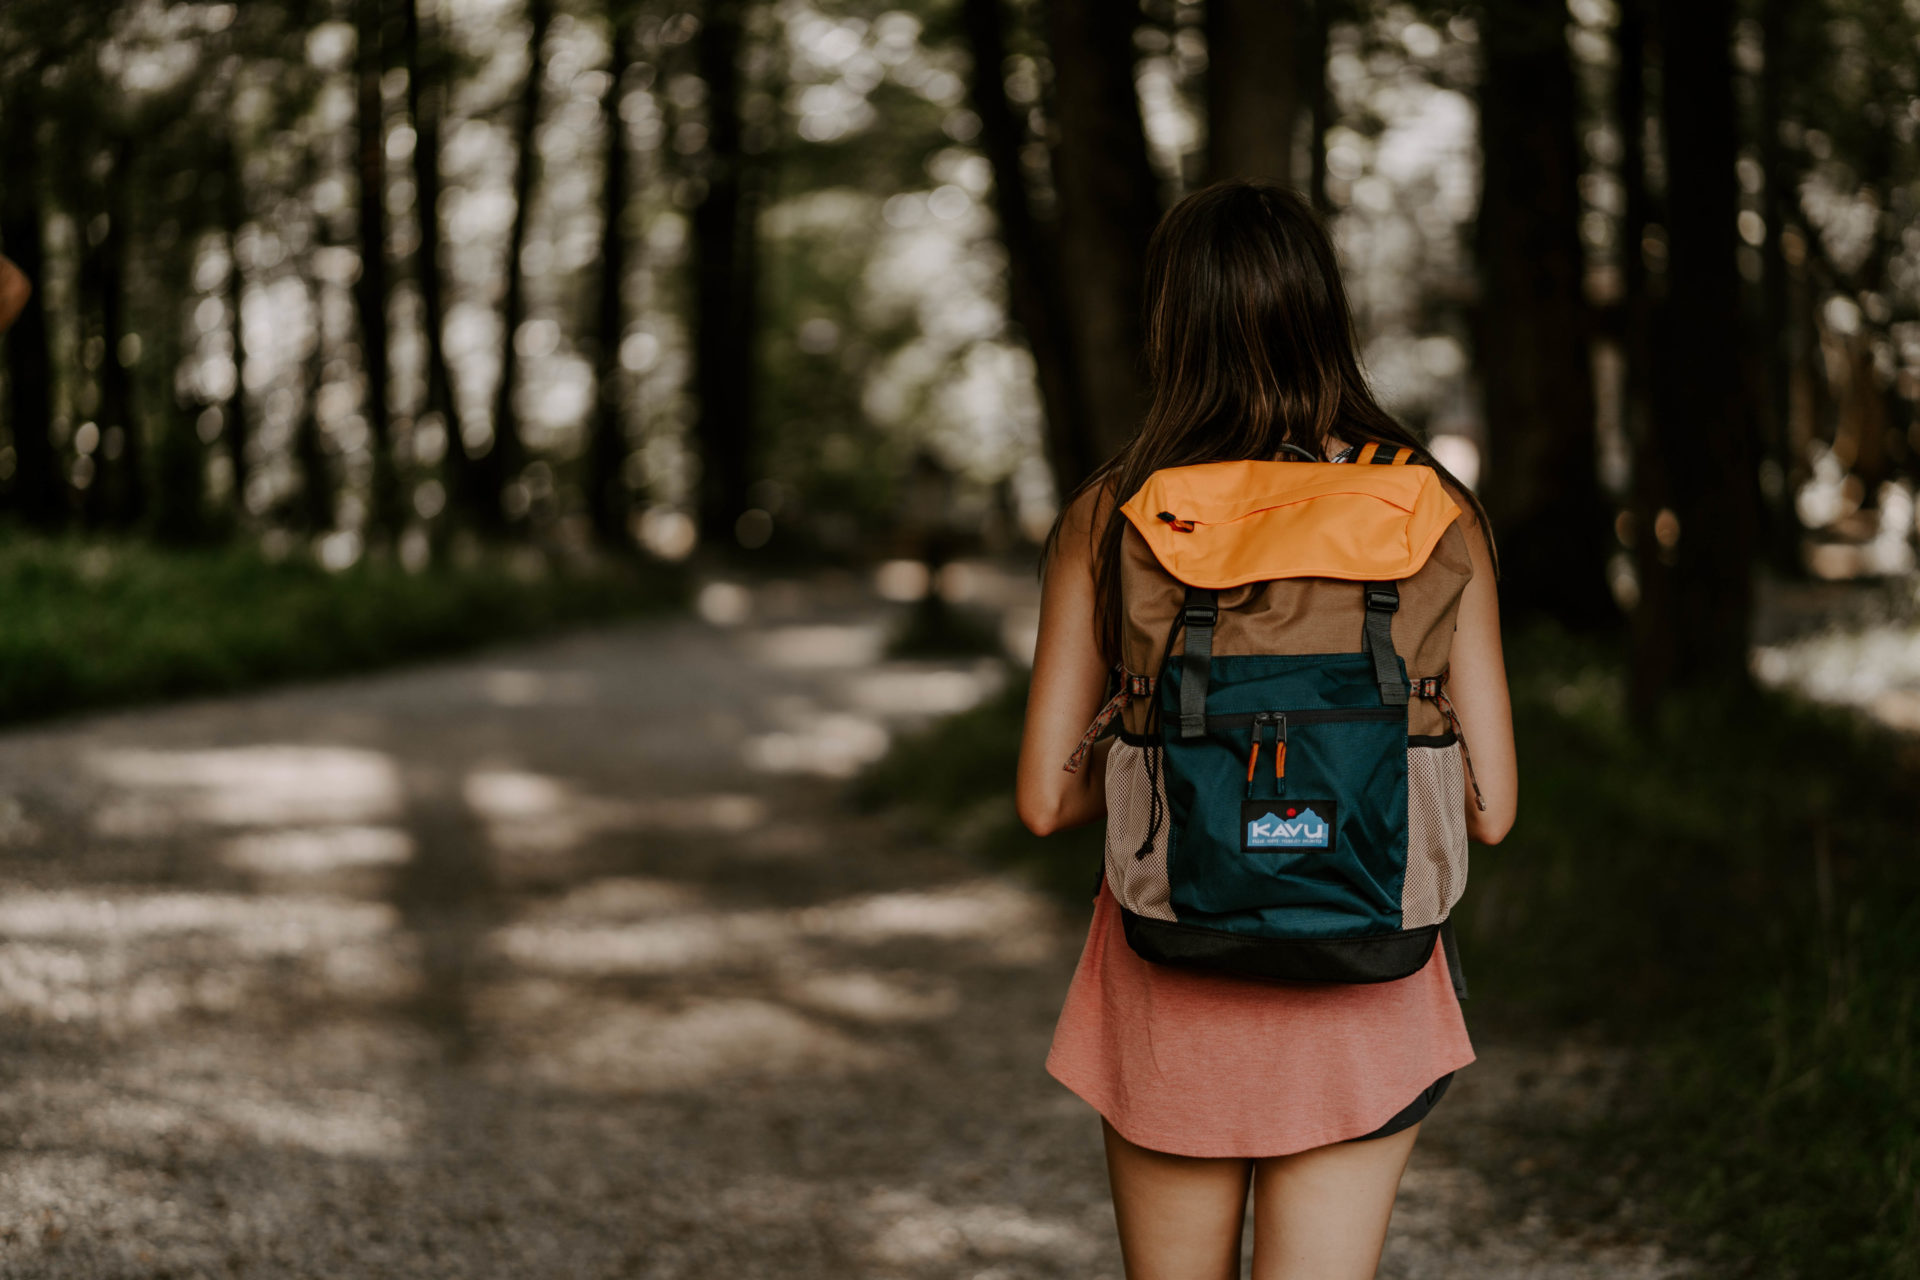 Hiking in Cades Cove with Kavu Backpack